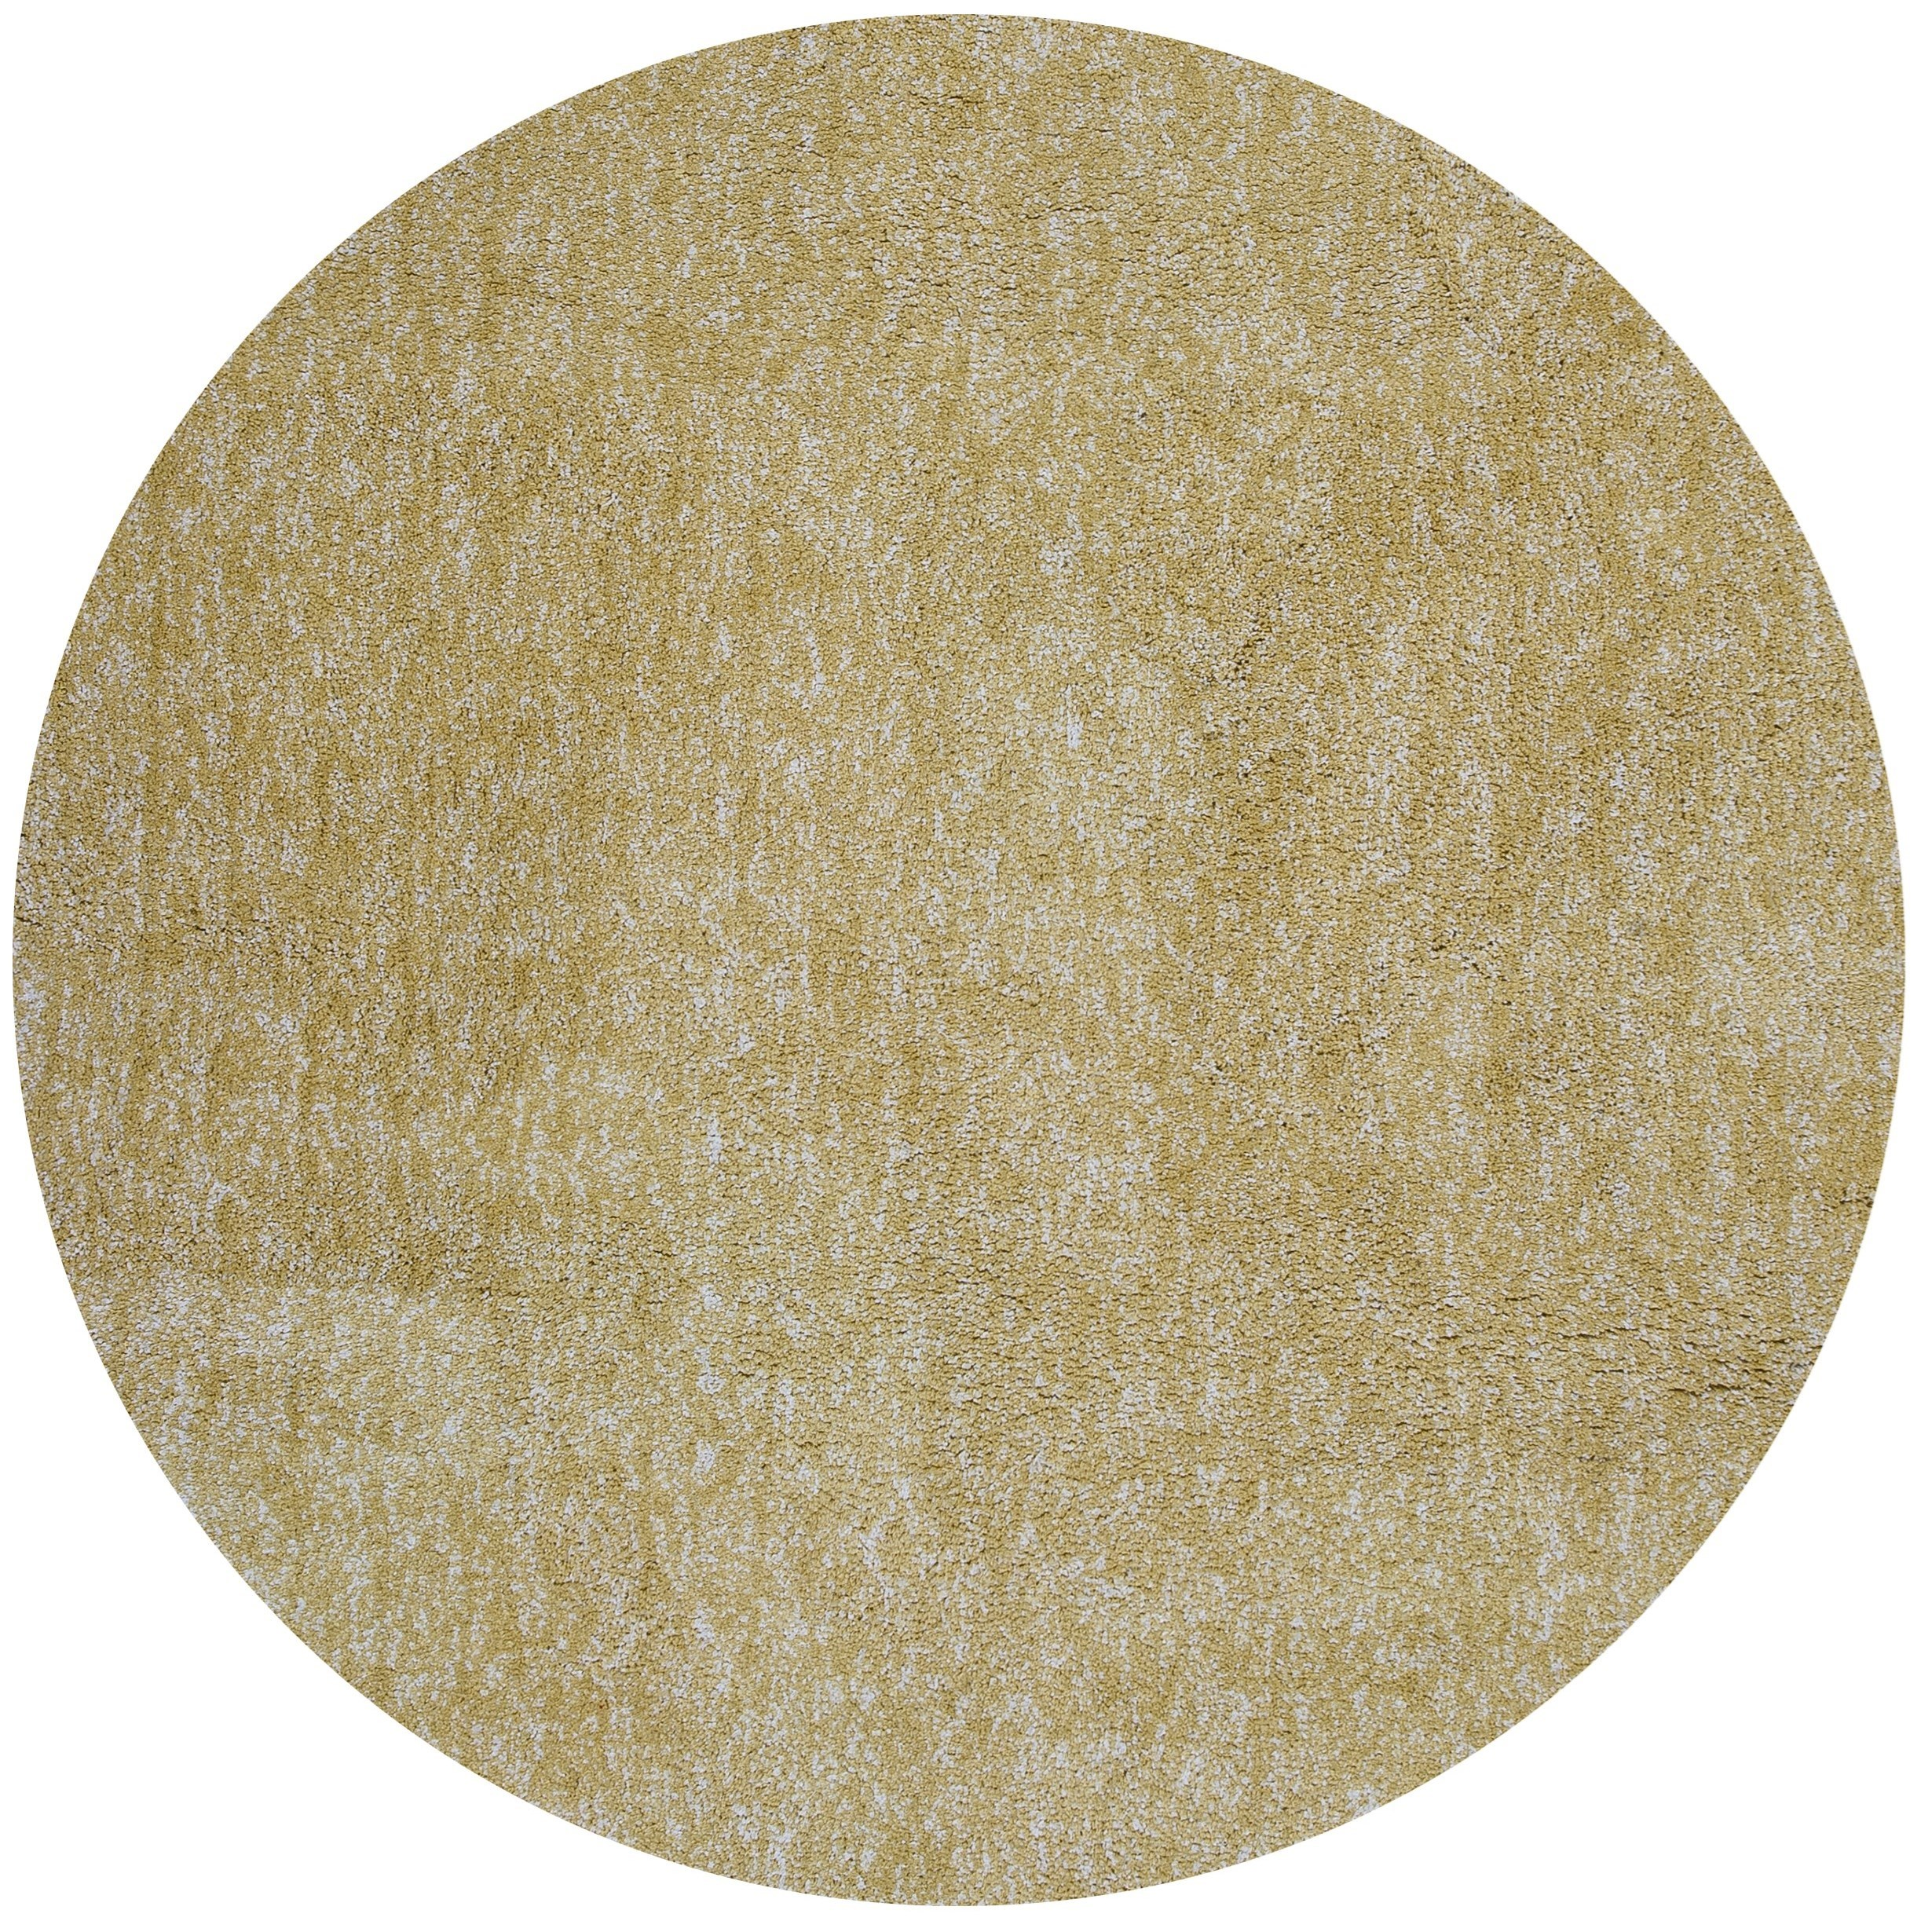 Bliss 8' X 8' Yellow Heather Shag Area Rug by Kas at Zak's Home